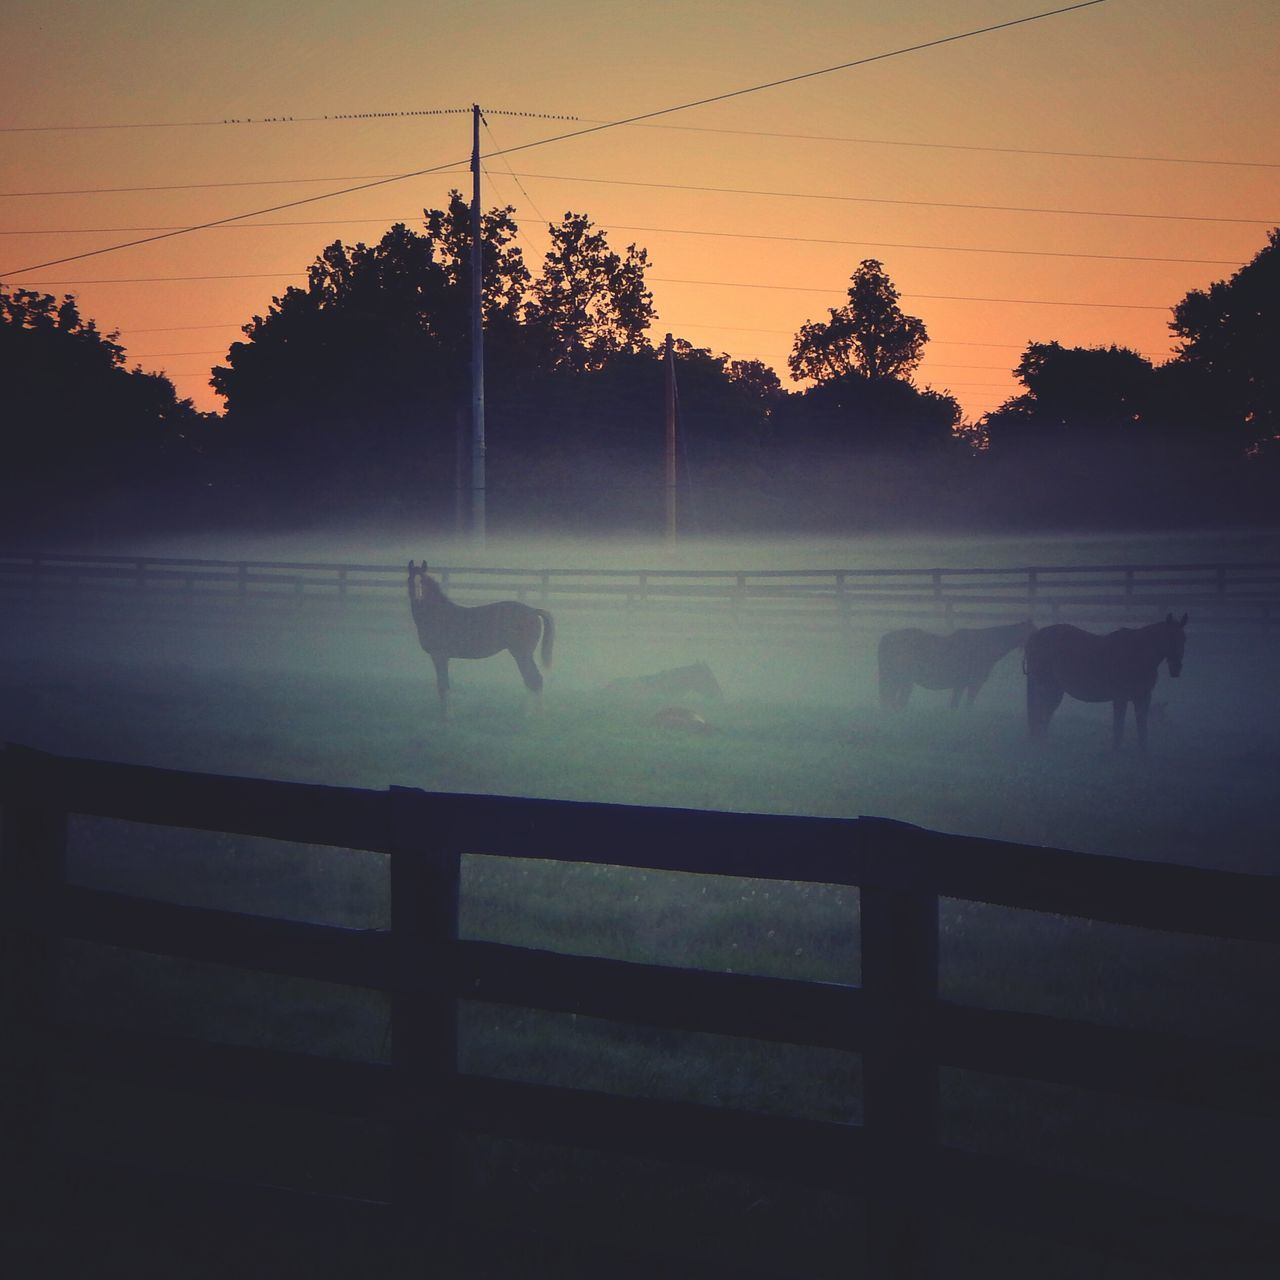 sunset, animal themes, domestic animals, horse, mammal, livestock, tree, silhouette, nature, grazing, no people, tranquil scene, paddock, outdoors, sky, rural scene, beauty in nature, day